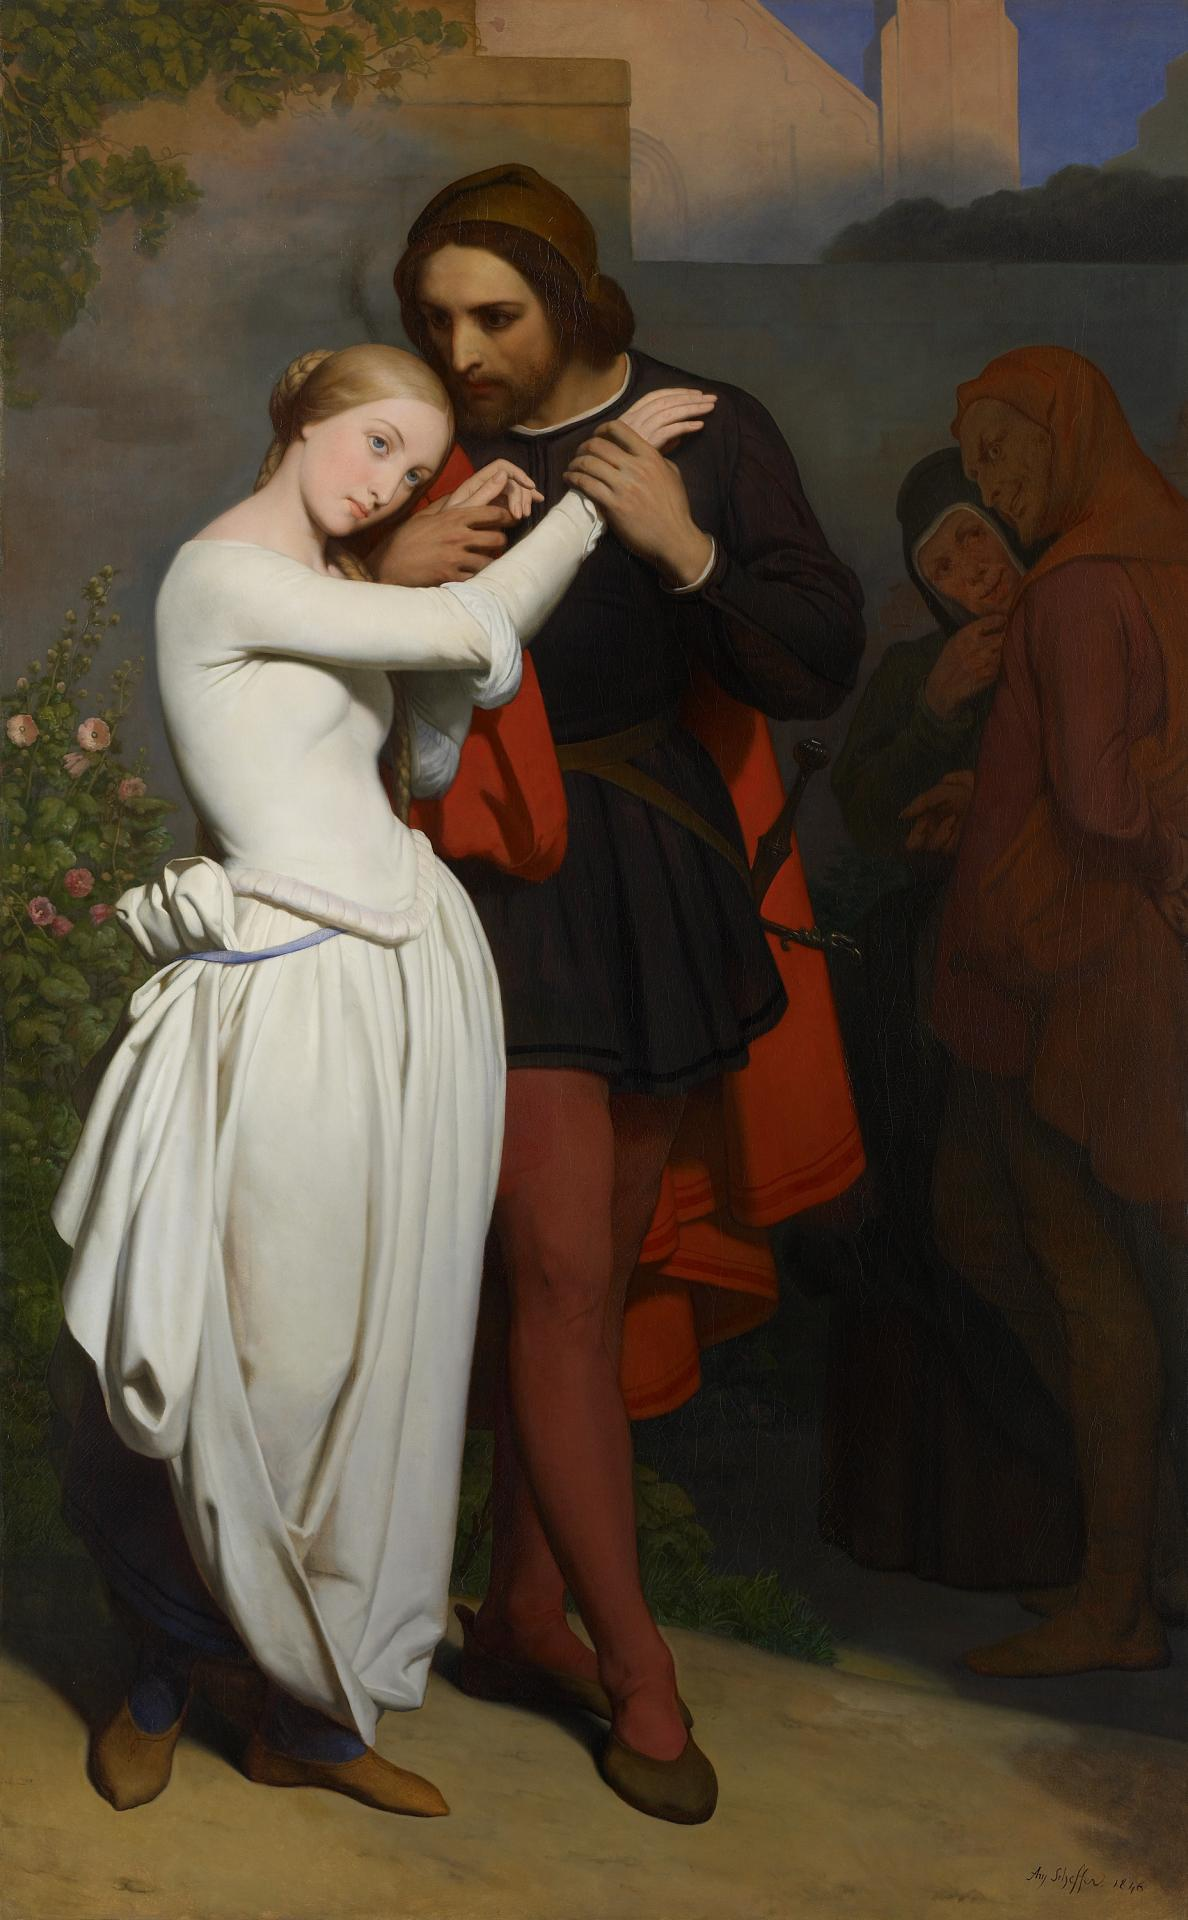 Marguerite and Faust in the garden